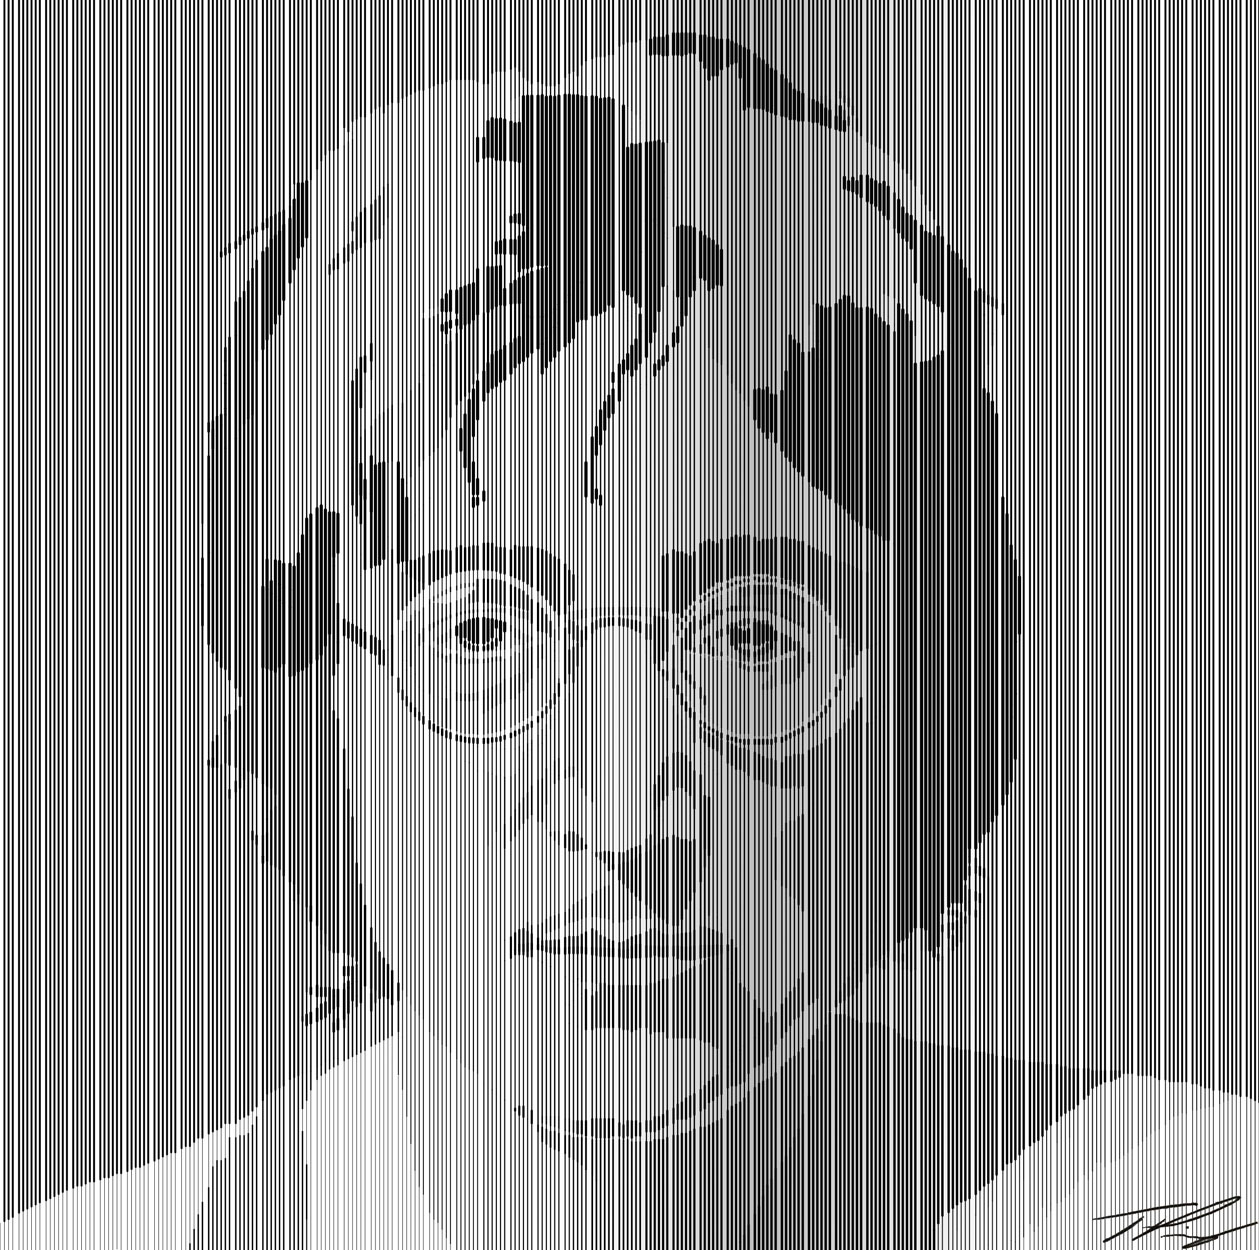 Line Drawing John Lennon : John lennon line drawing by studioartstudent on deviantart